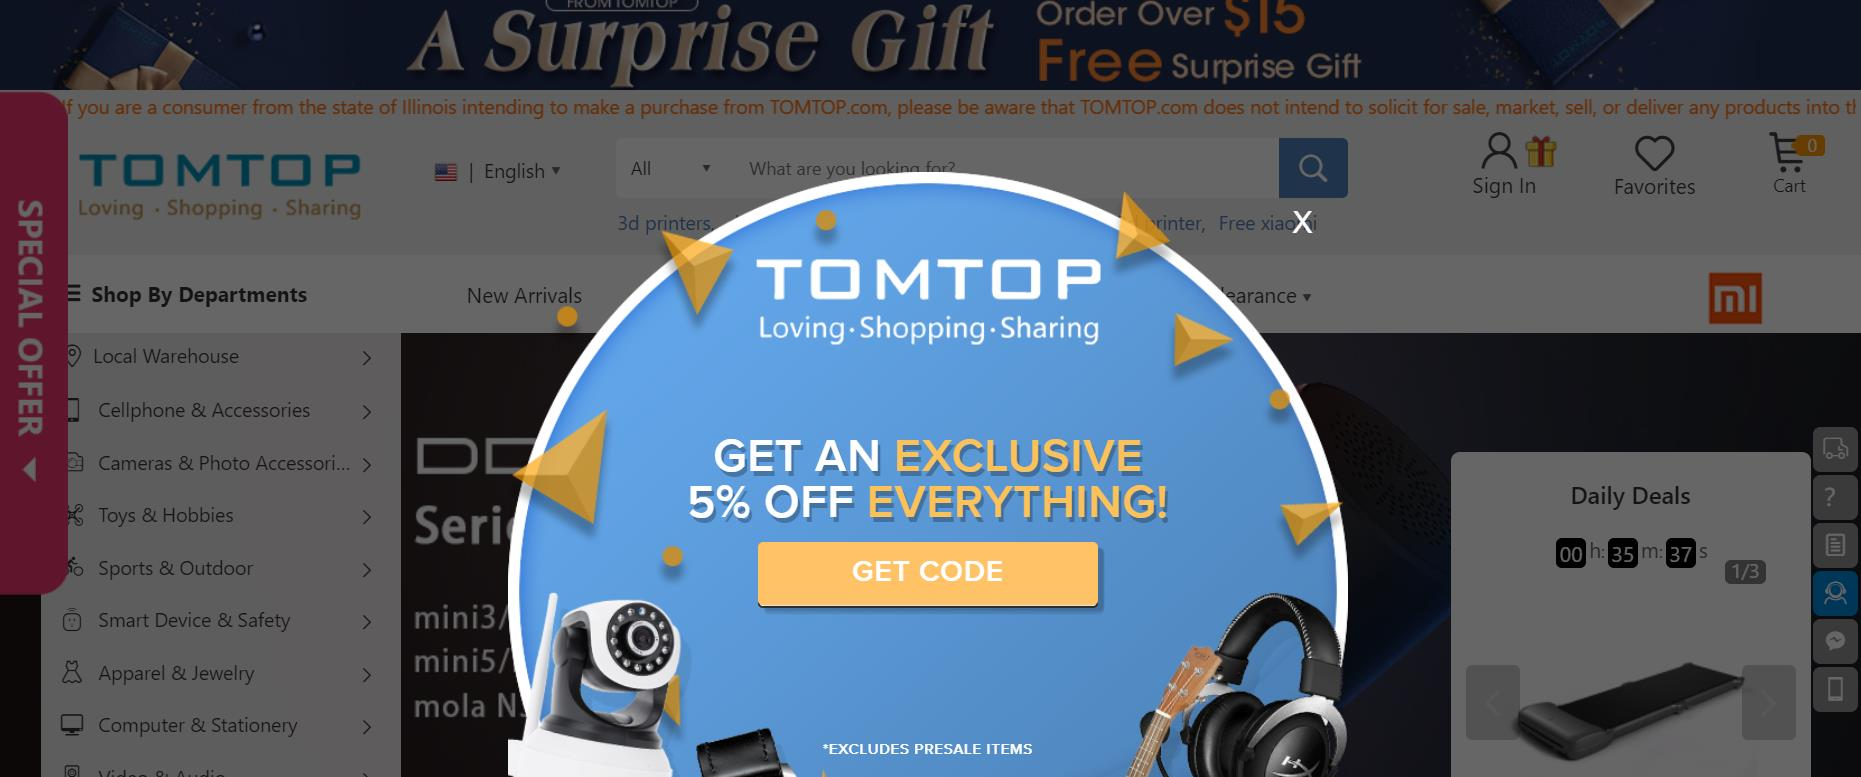 coupons tomtop com